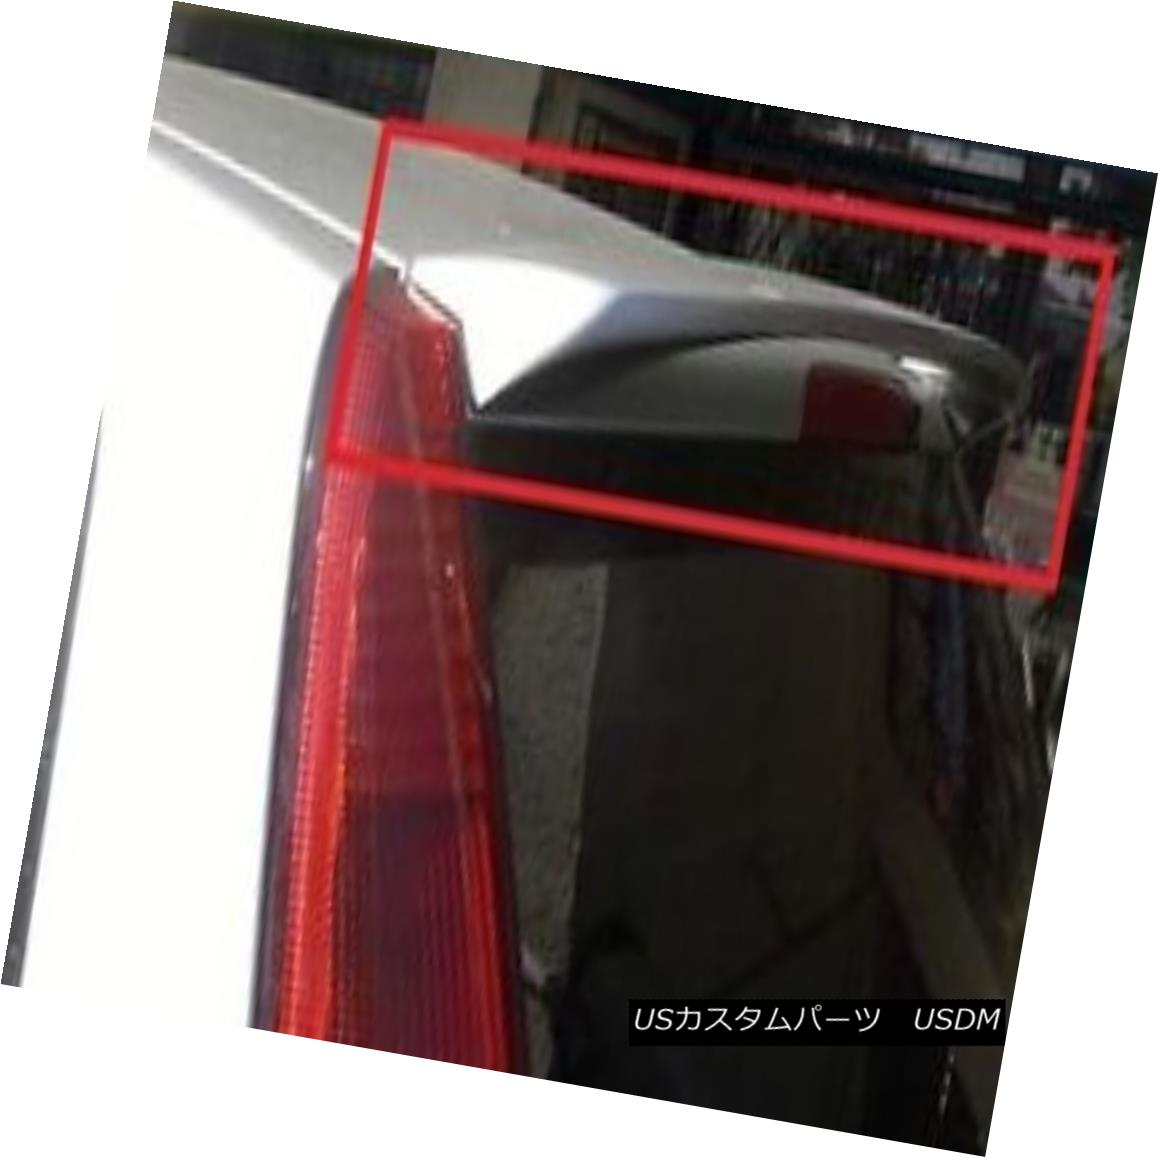 エアロパーツ FORD FIESTA 6 MK6 6 2002- 2005 REAR ROOF SPOILER NEW フォードフィエスタ6 MK6 6 2002- 2005 REAR ROOF SPOILER NEW